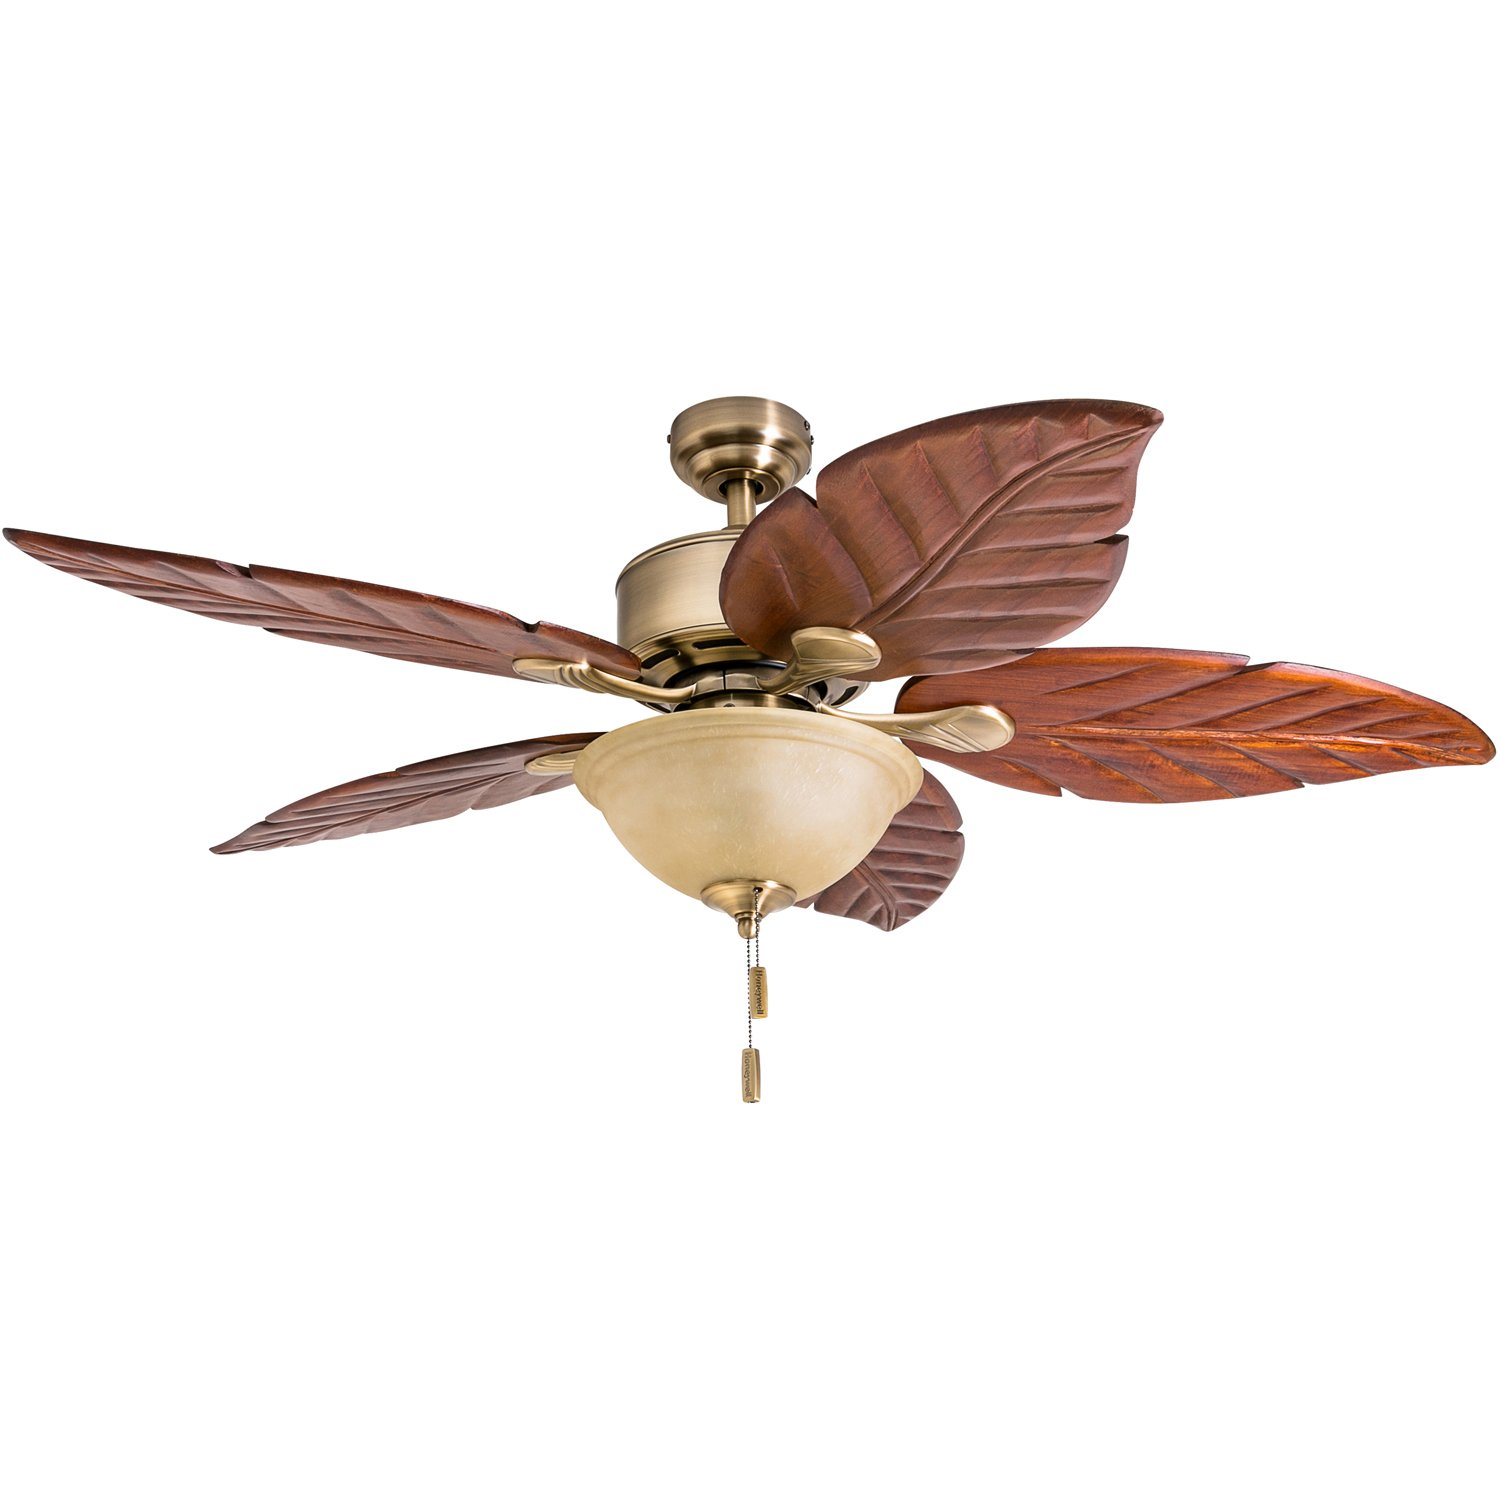 Honeywell Sabal Palm 52-Inch Tropical Ceiling Fan with Sunset Bowl Light, Five Hand Carved Wooden Leaf Blades, Lindenwood/Basswood, Bronze 50204